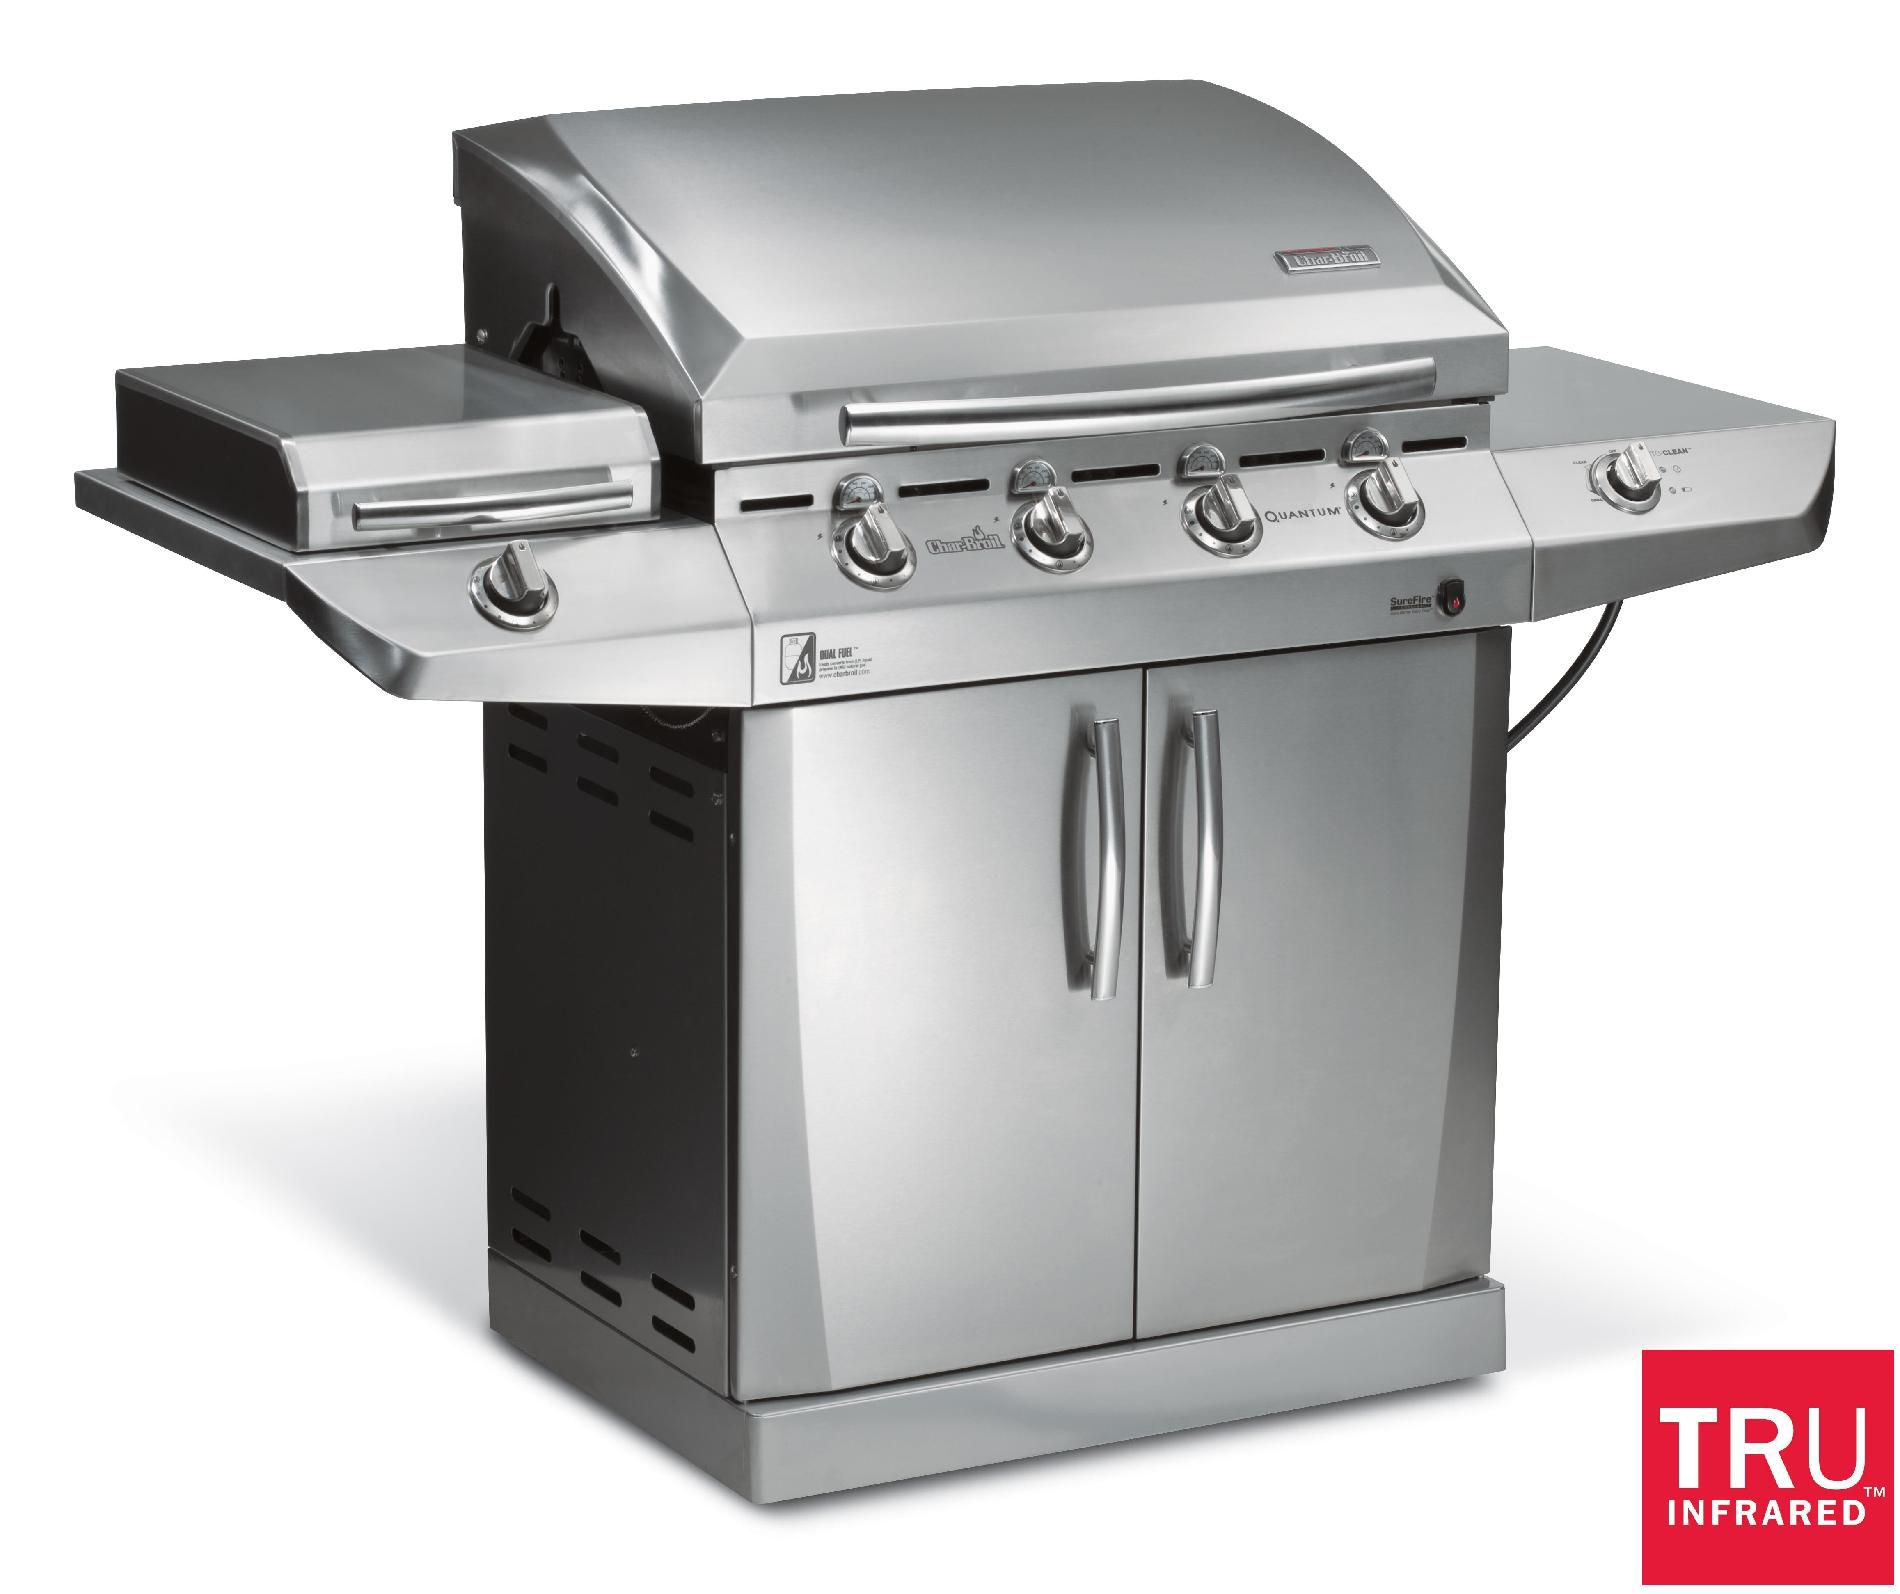 4-Burner-Infrared-Gas-Grill-with-Side-Burner-and-Auto-Clean*